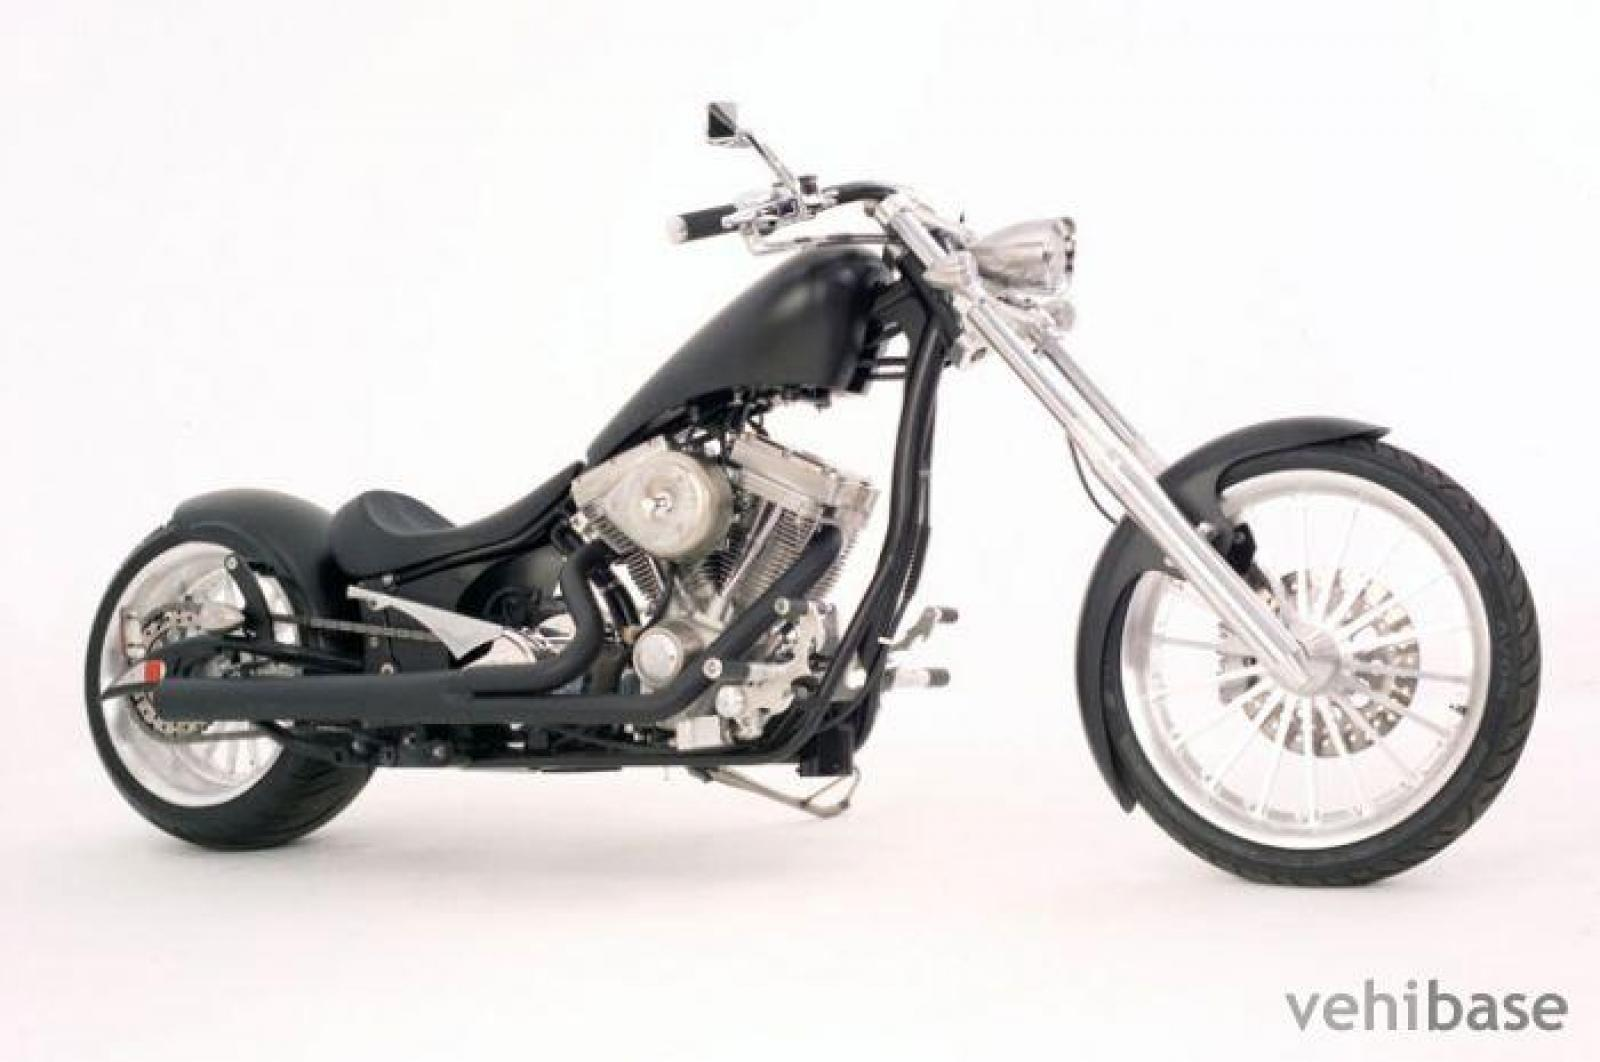 Big Bear Choppers Athena ProStreet 100 Smooth Carb 2010 images #63843